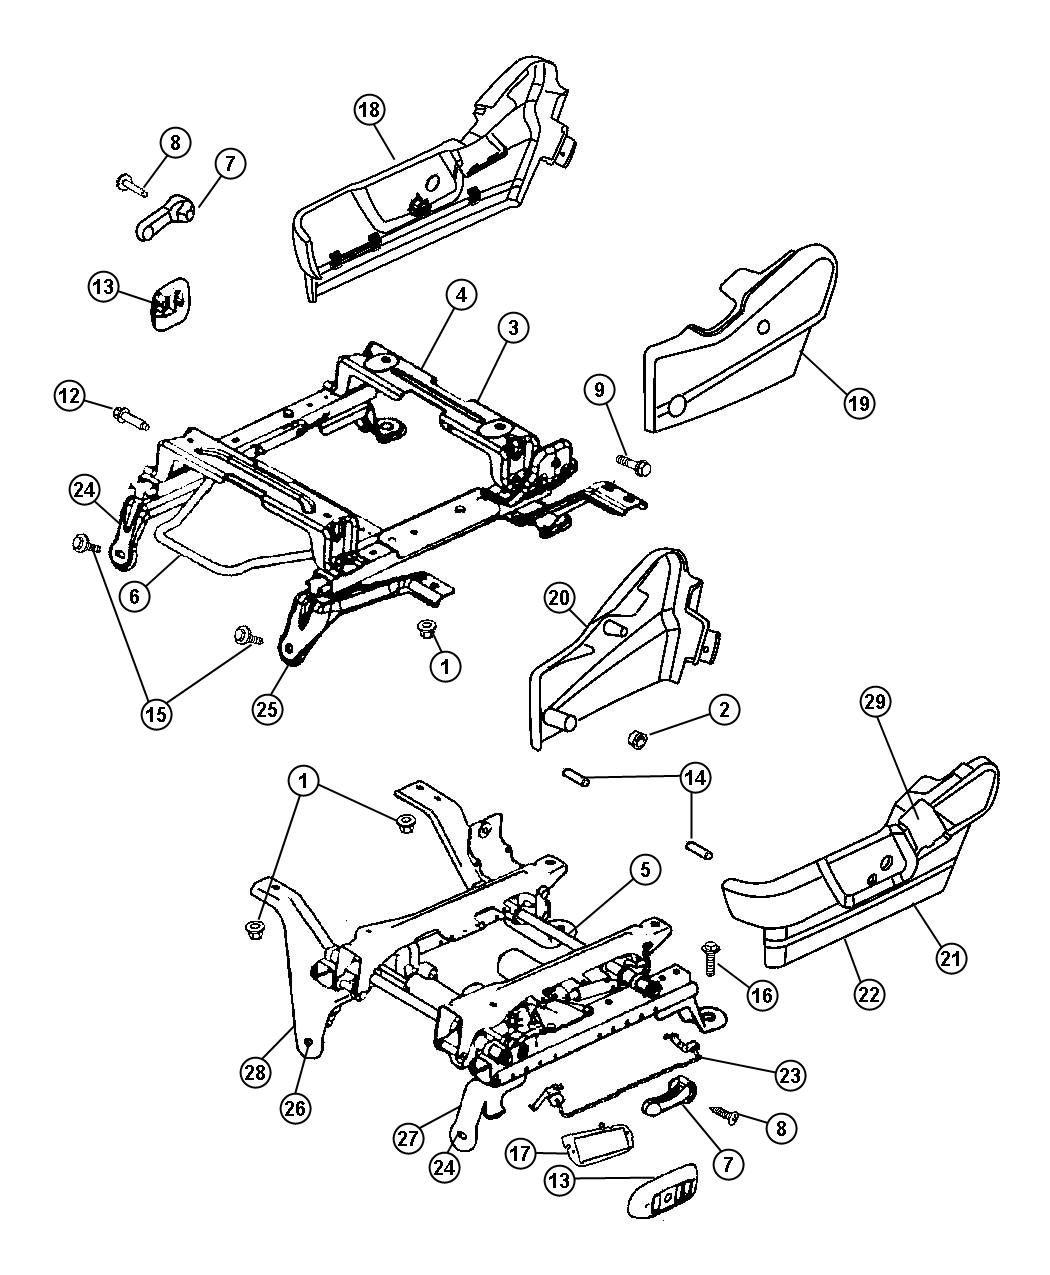 Dodge Ram Riser Seat With Xz9 Assembly Plant Part